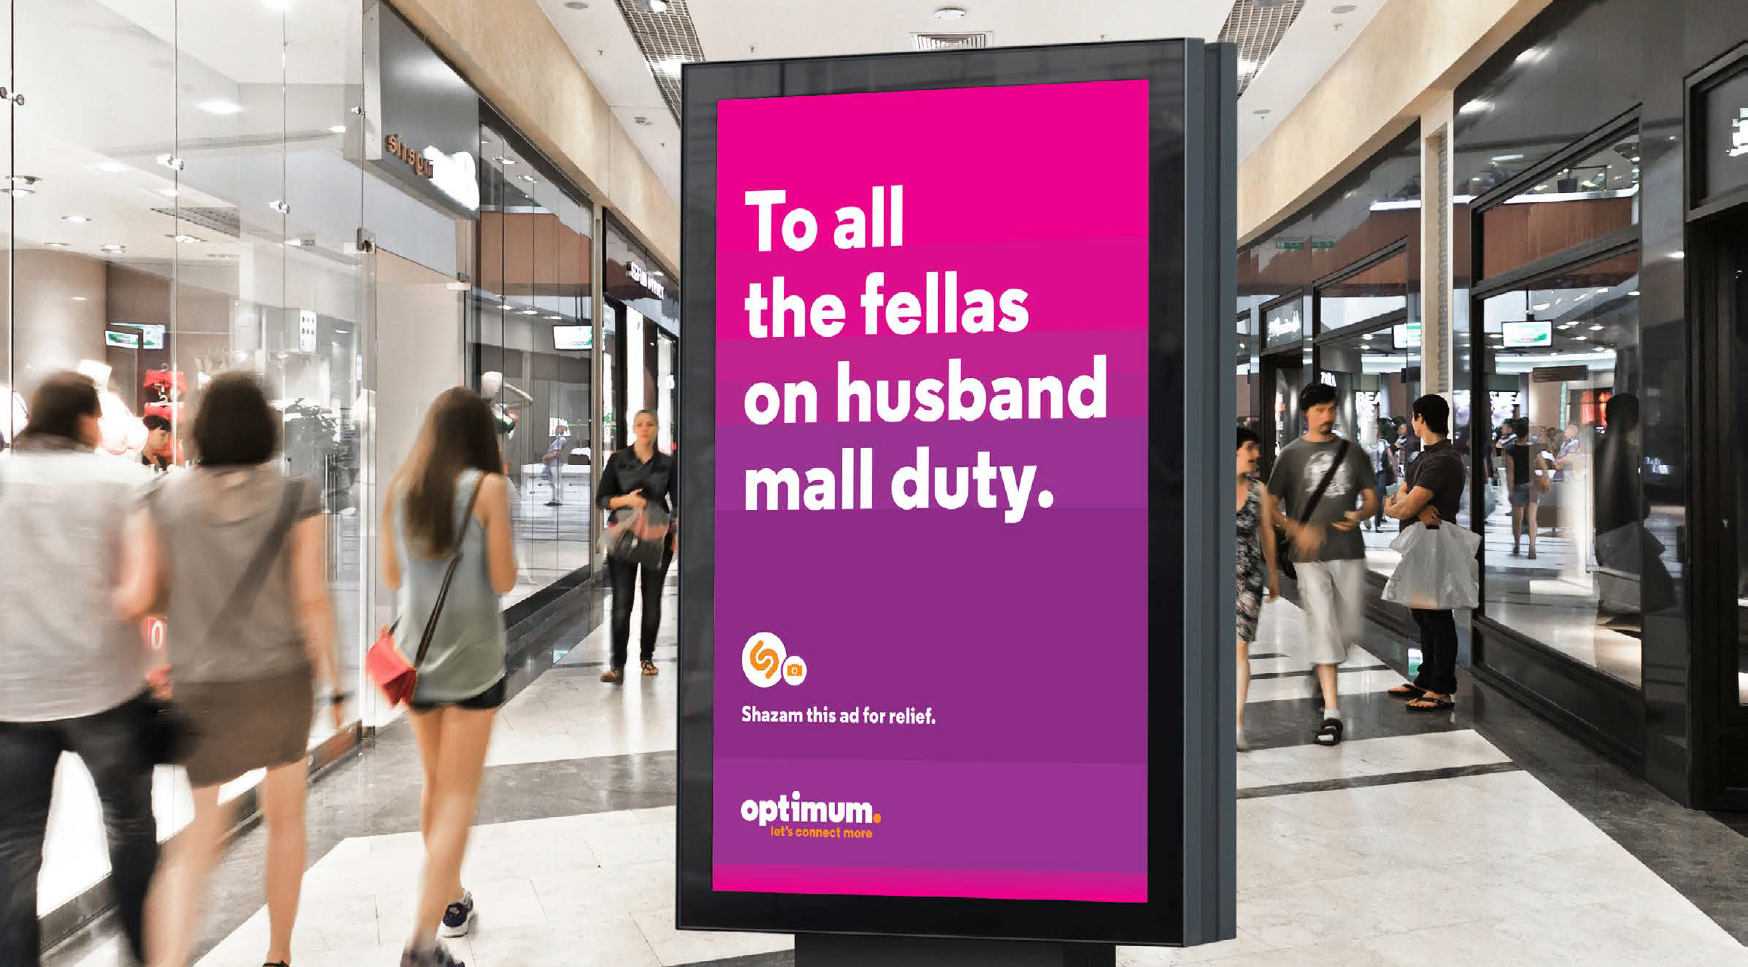 Consumers could receive content messages from Optimum to help relieve stress in situations where a little content relief is a welcome diversion from the daily grind. Another way of actually doing something to improve the connectivity in people's lives.   GEO FENCED DIGITAL  / Agency: Martin / Based on location